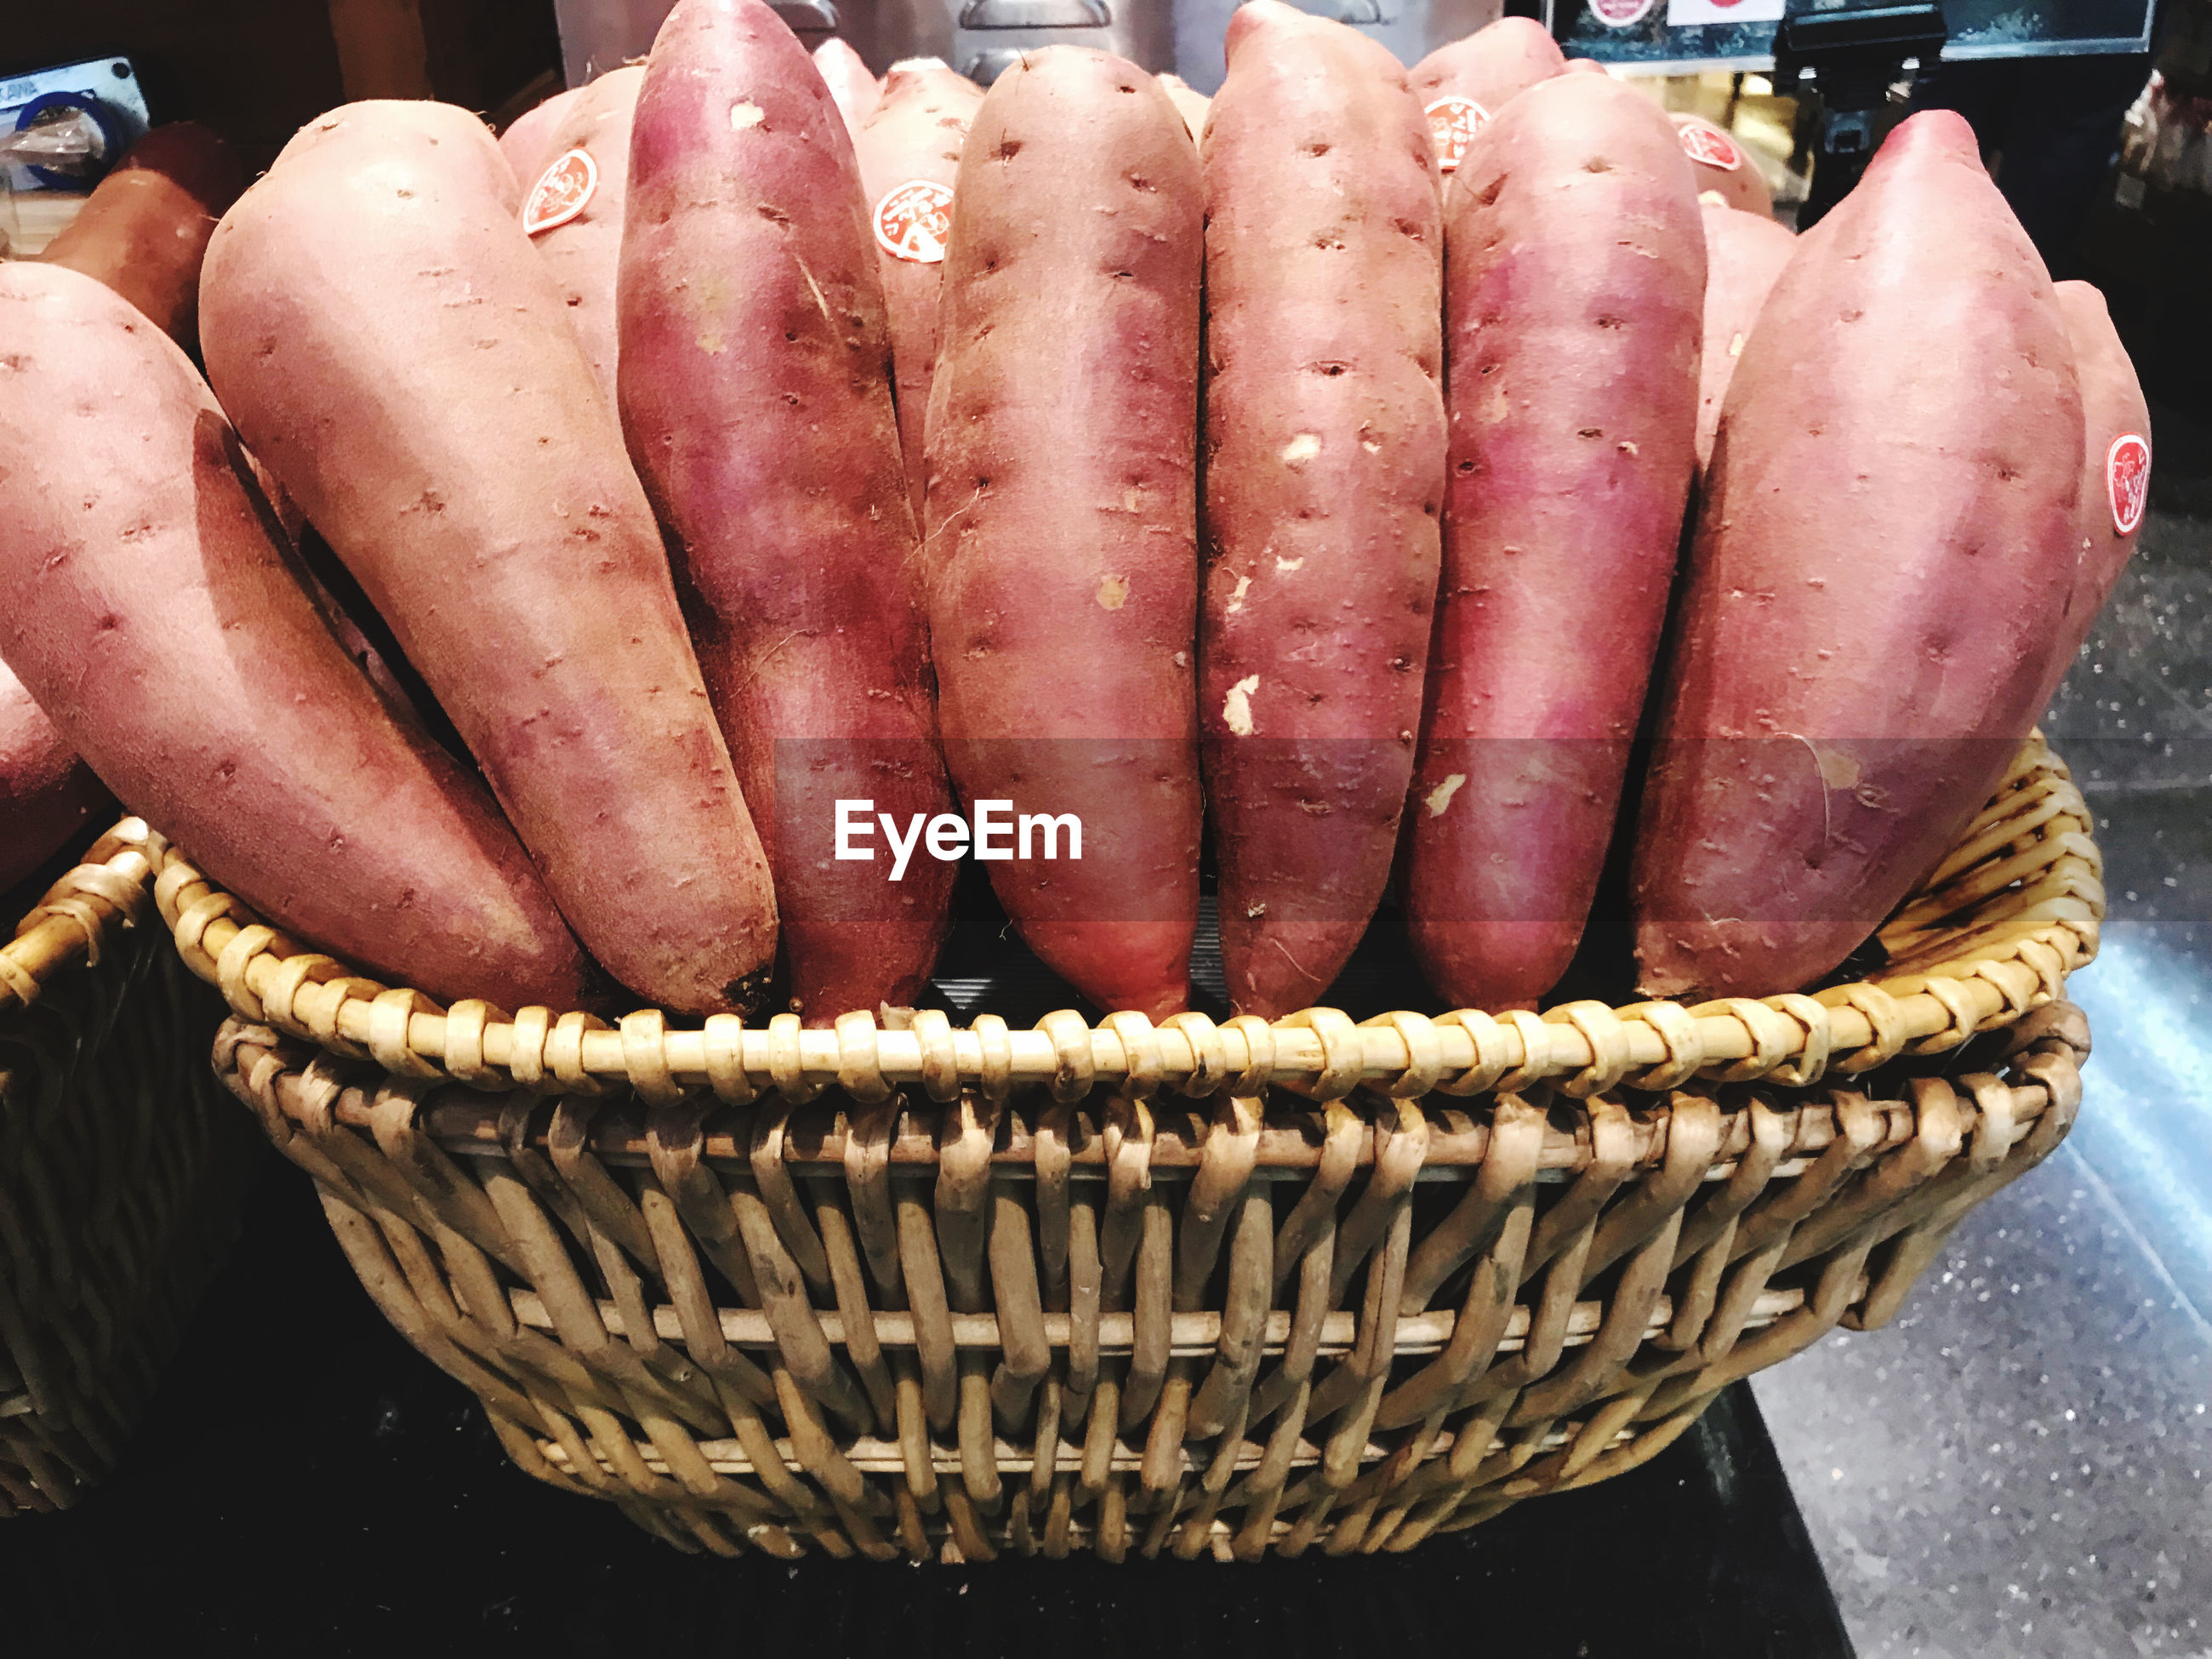 CLOSE-UP OF CARROTS IN BASKET